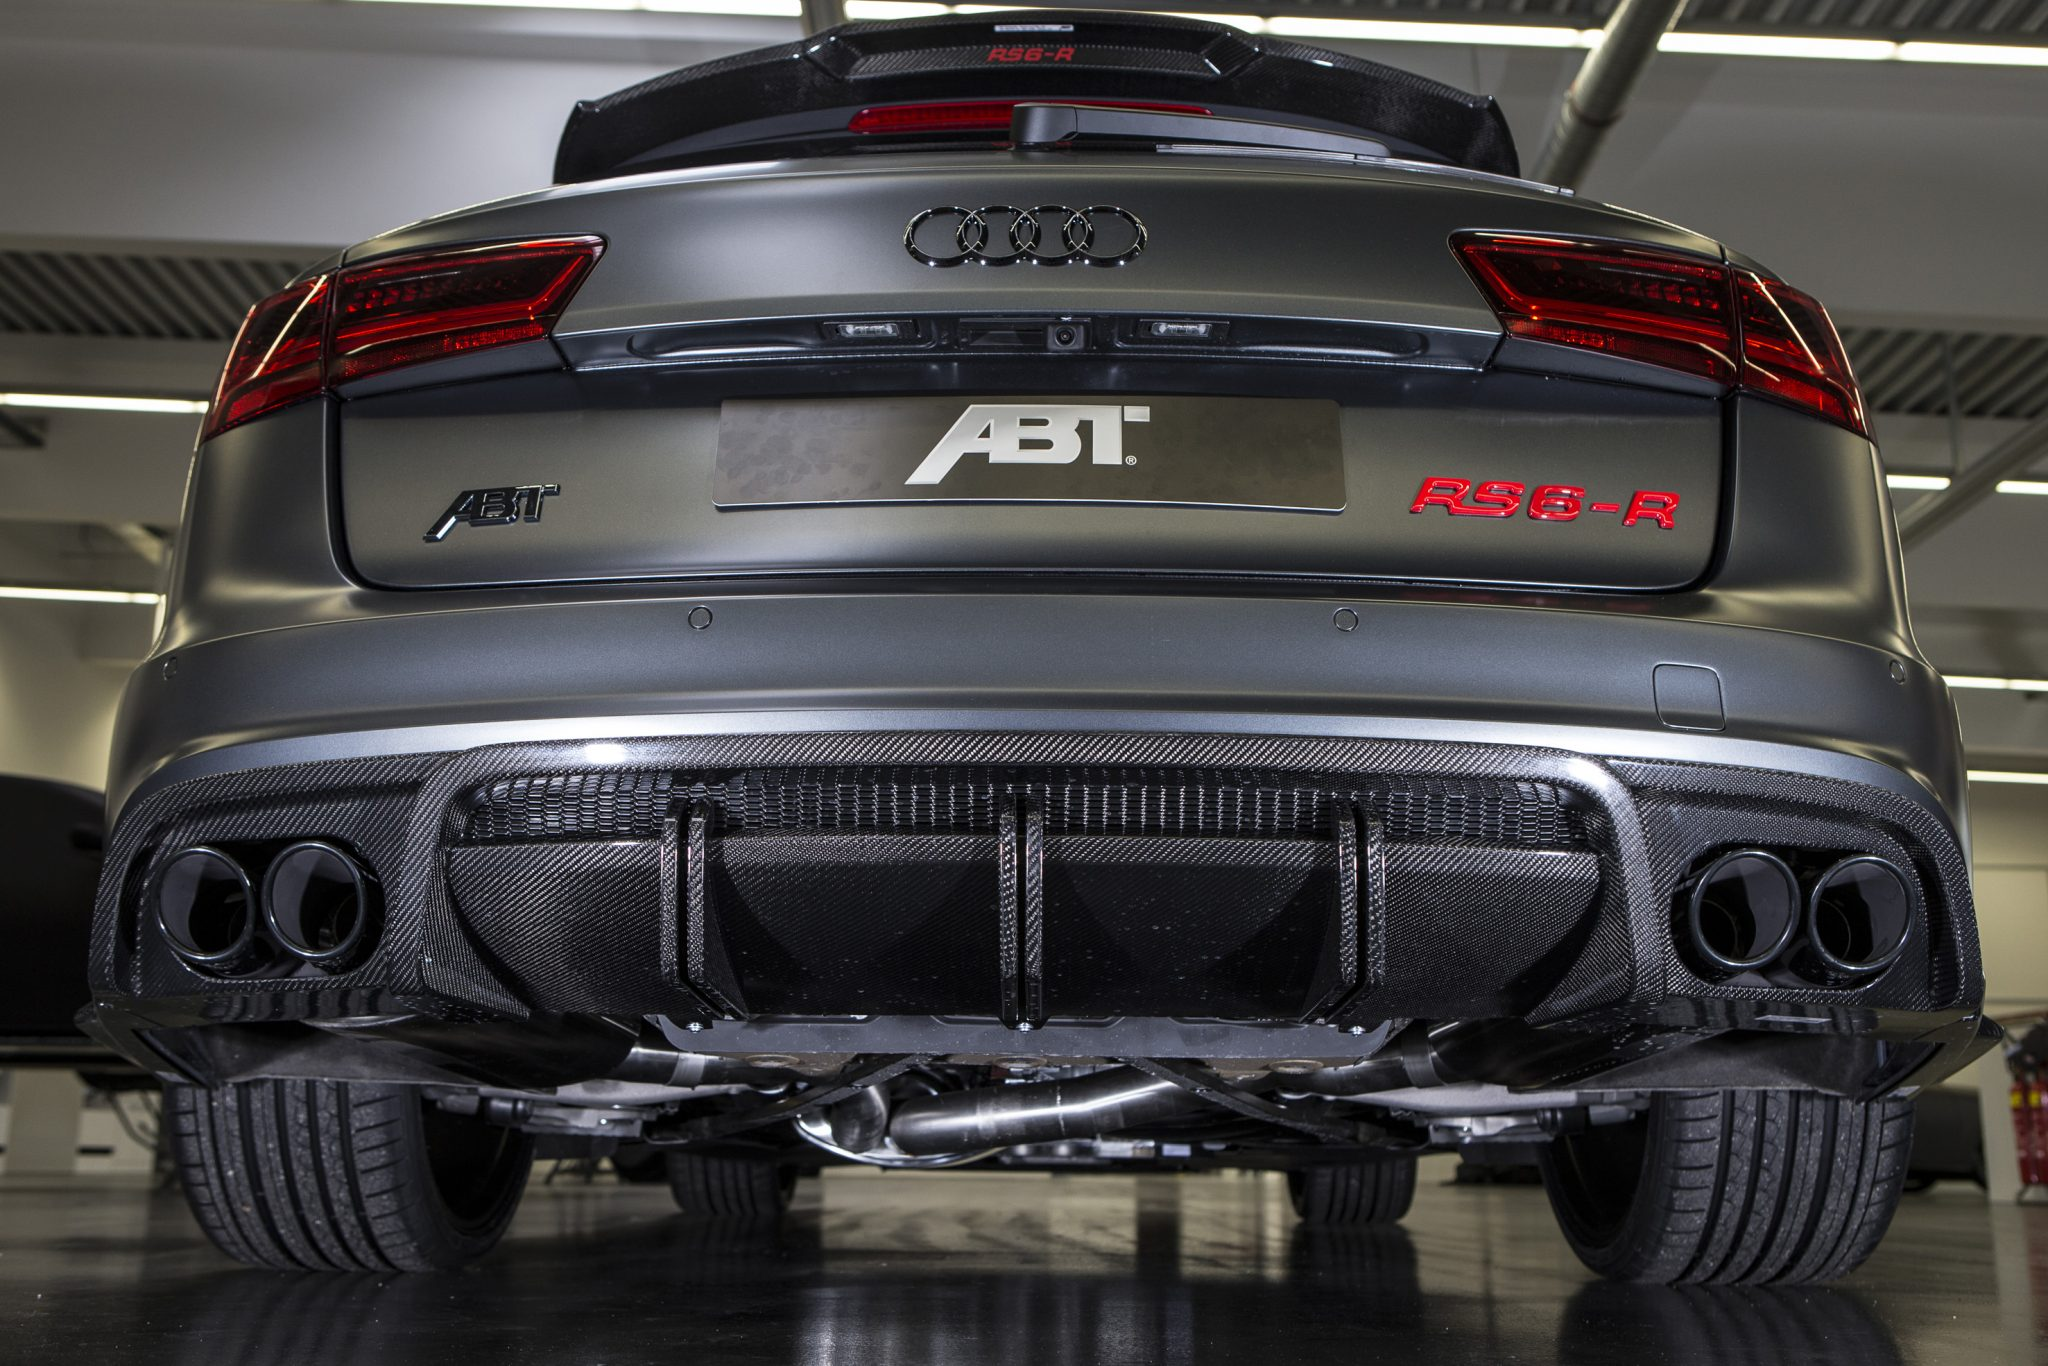 ABT_RS6-R_004